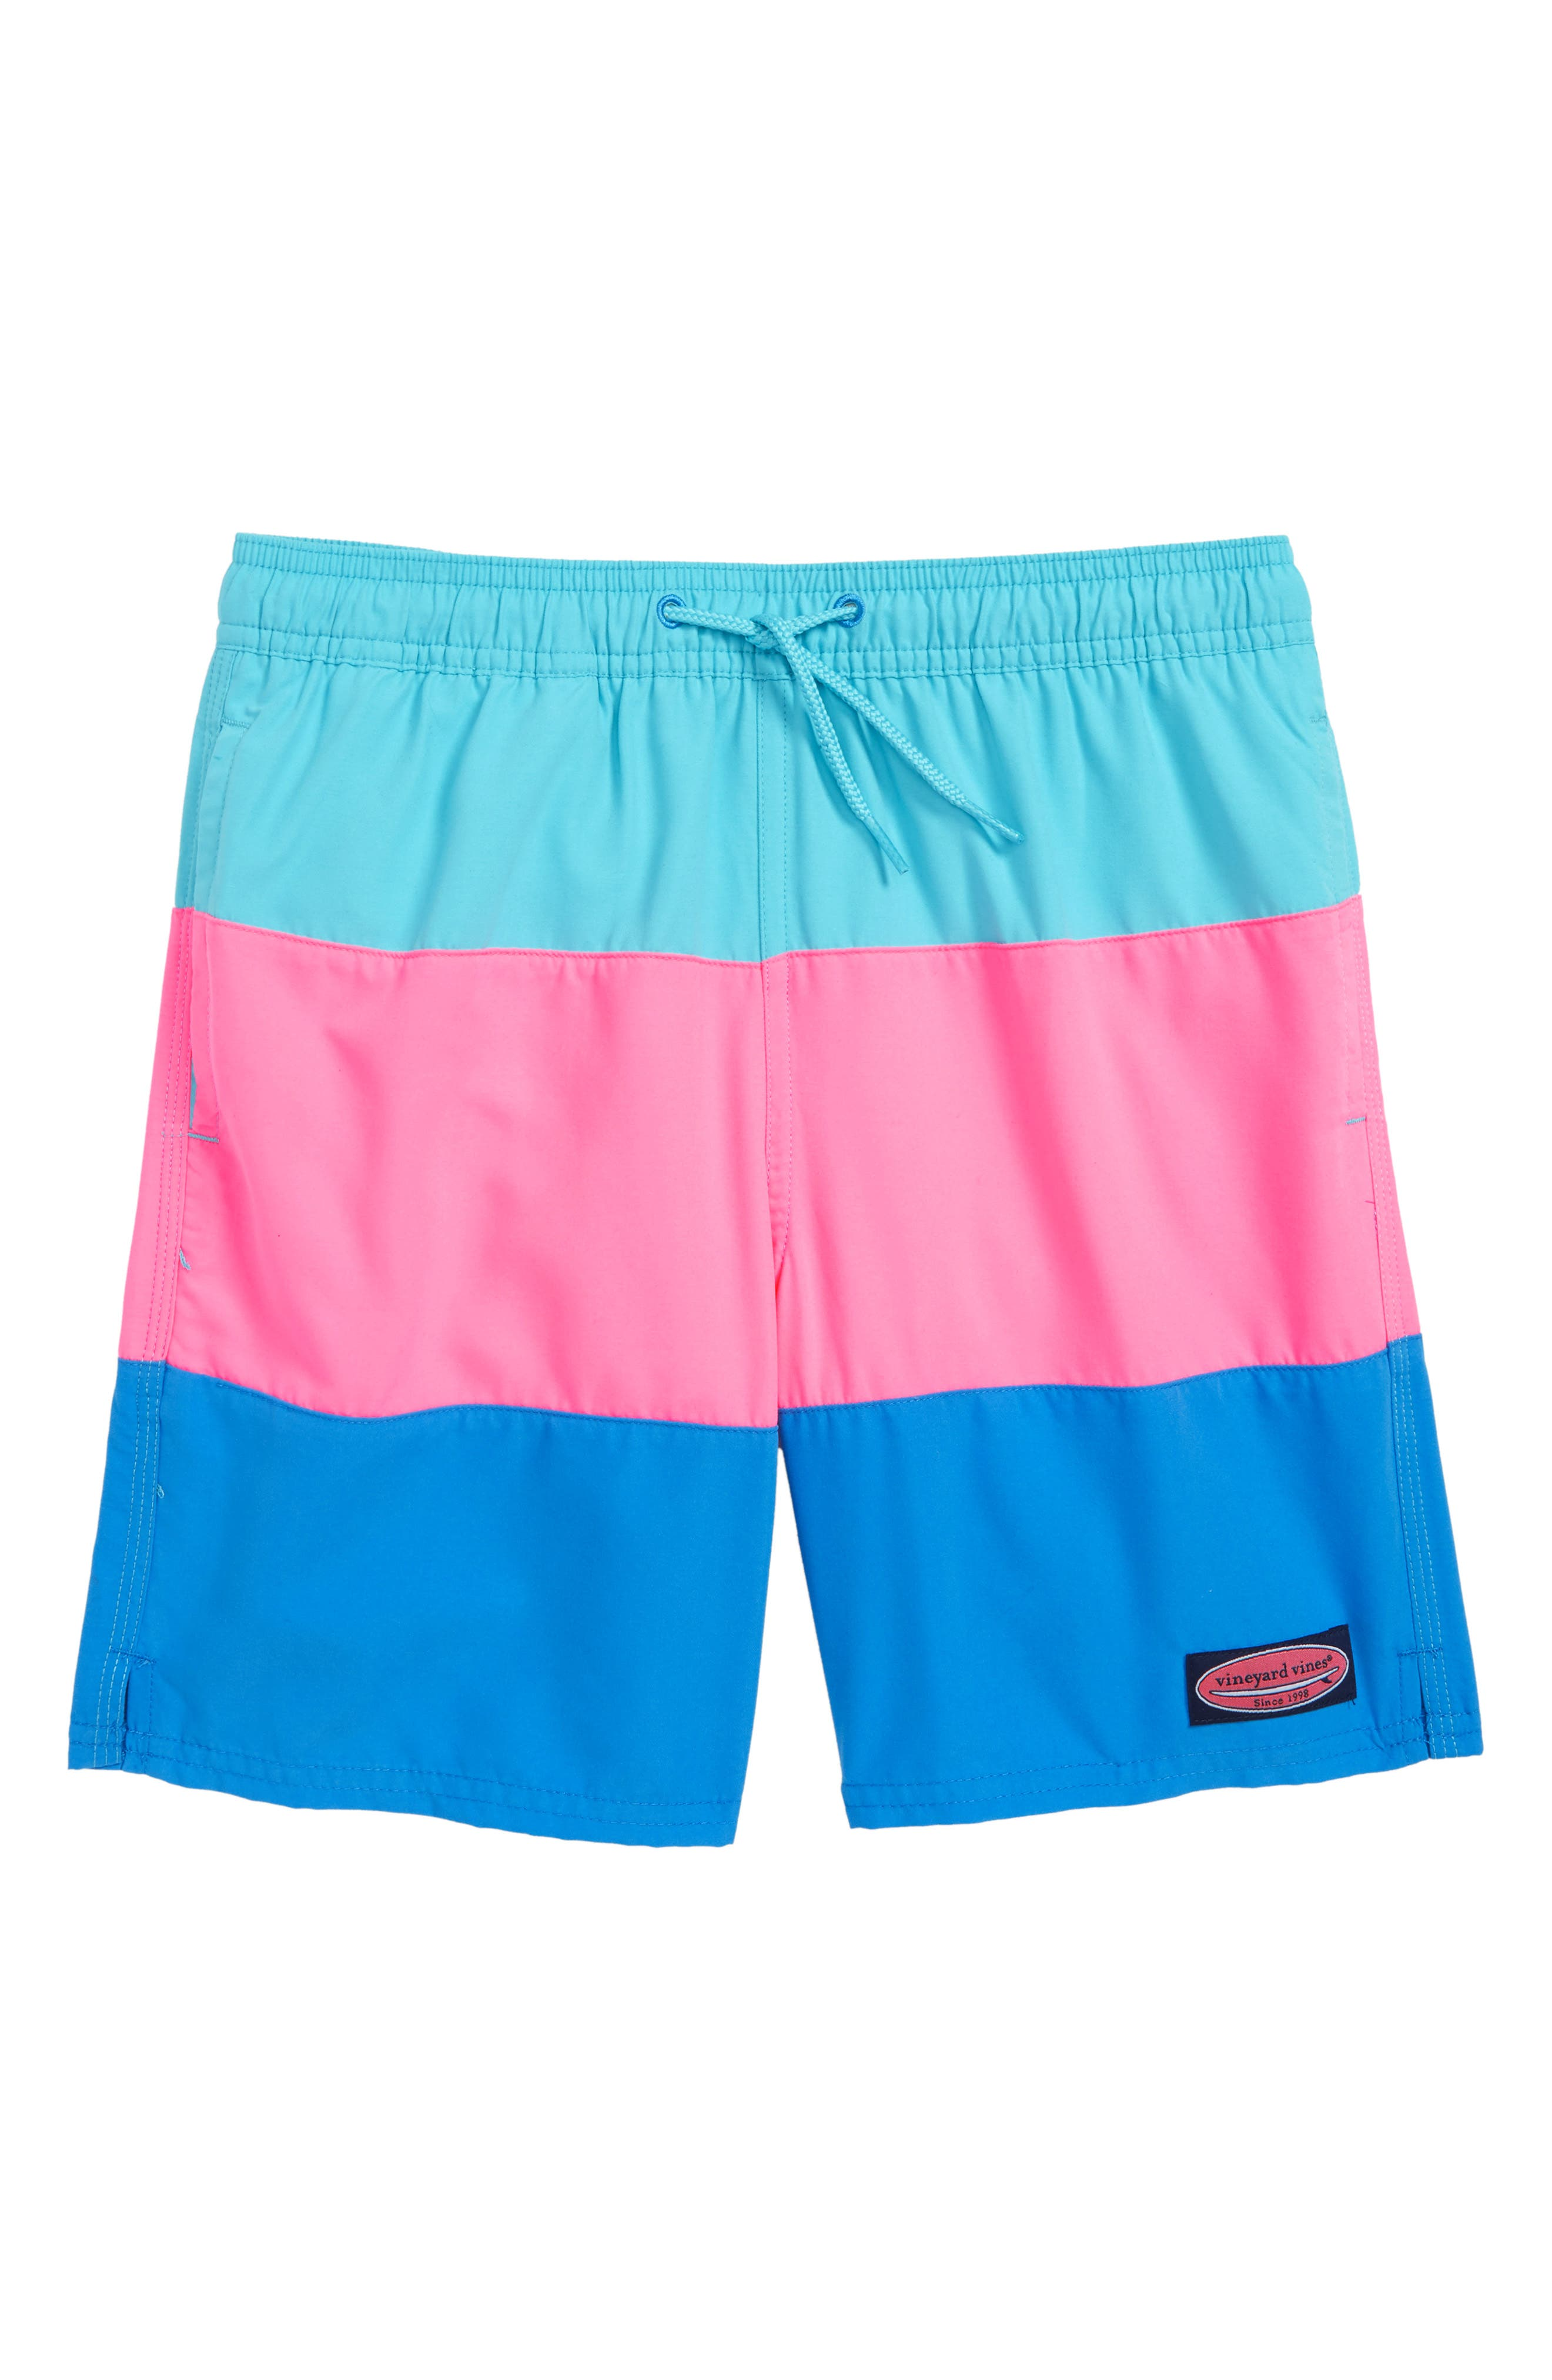 Chappy Pieced Rough Seas Swim Trunks,                             Main thumbnail 1, color,                             440